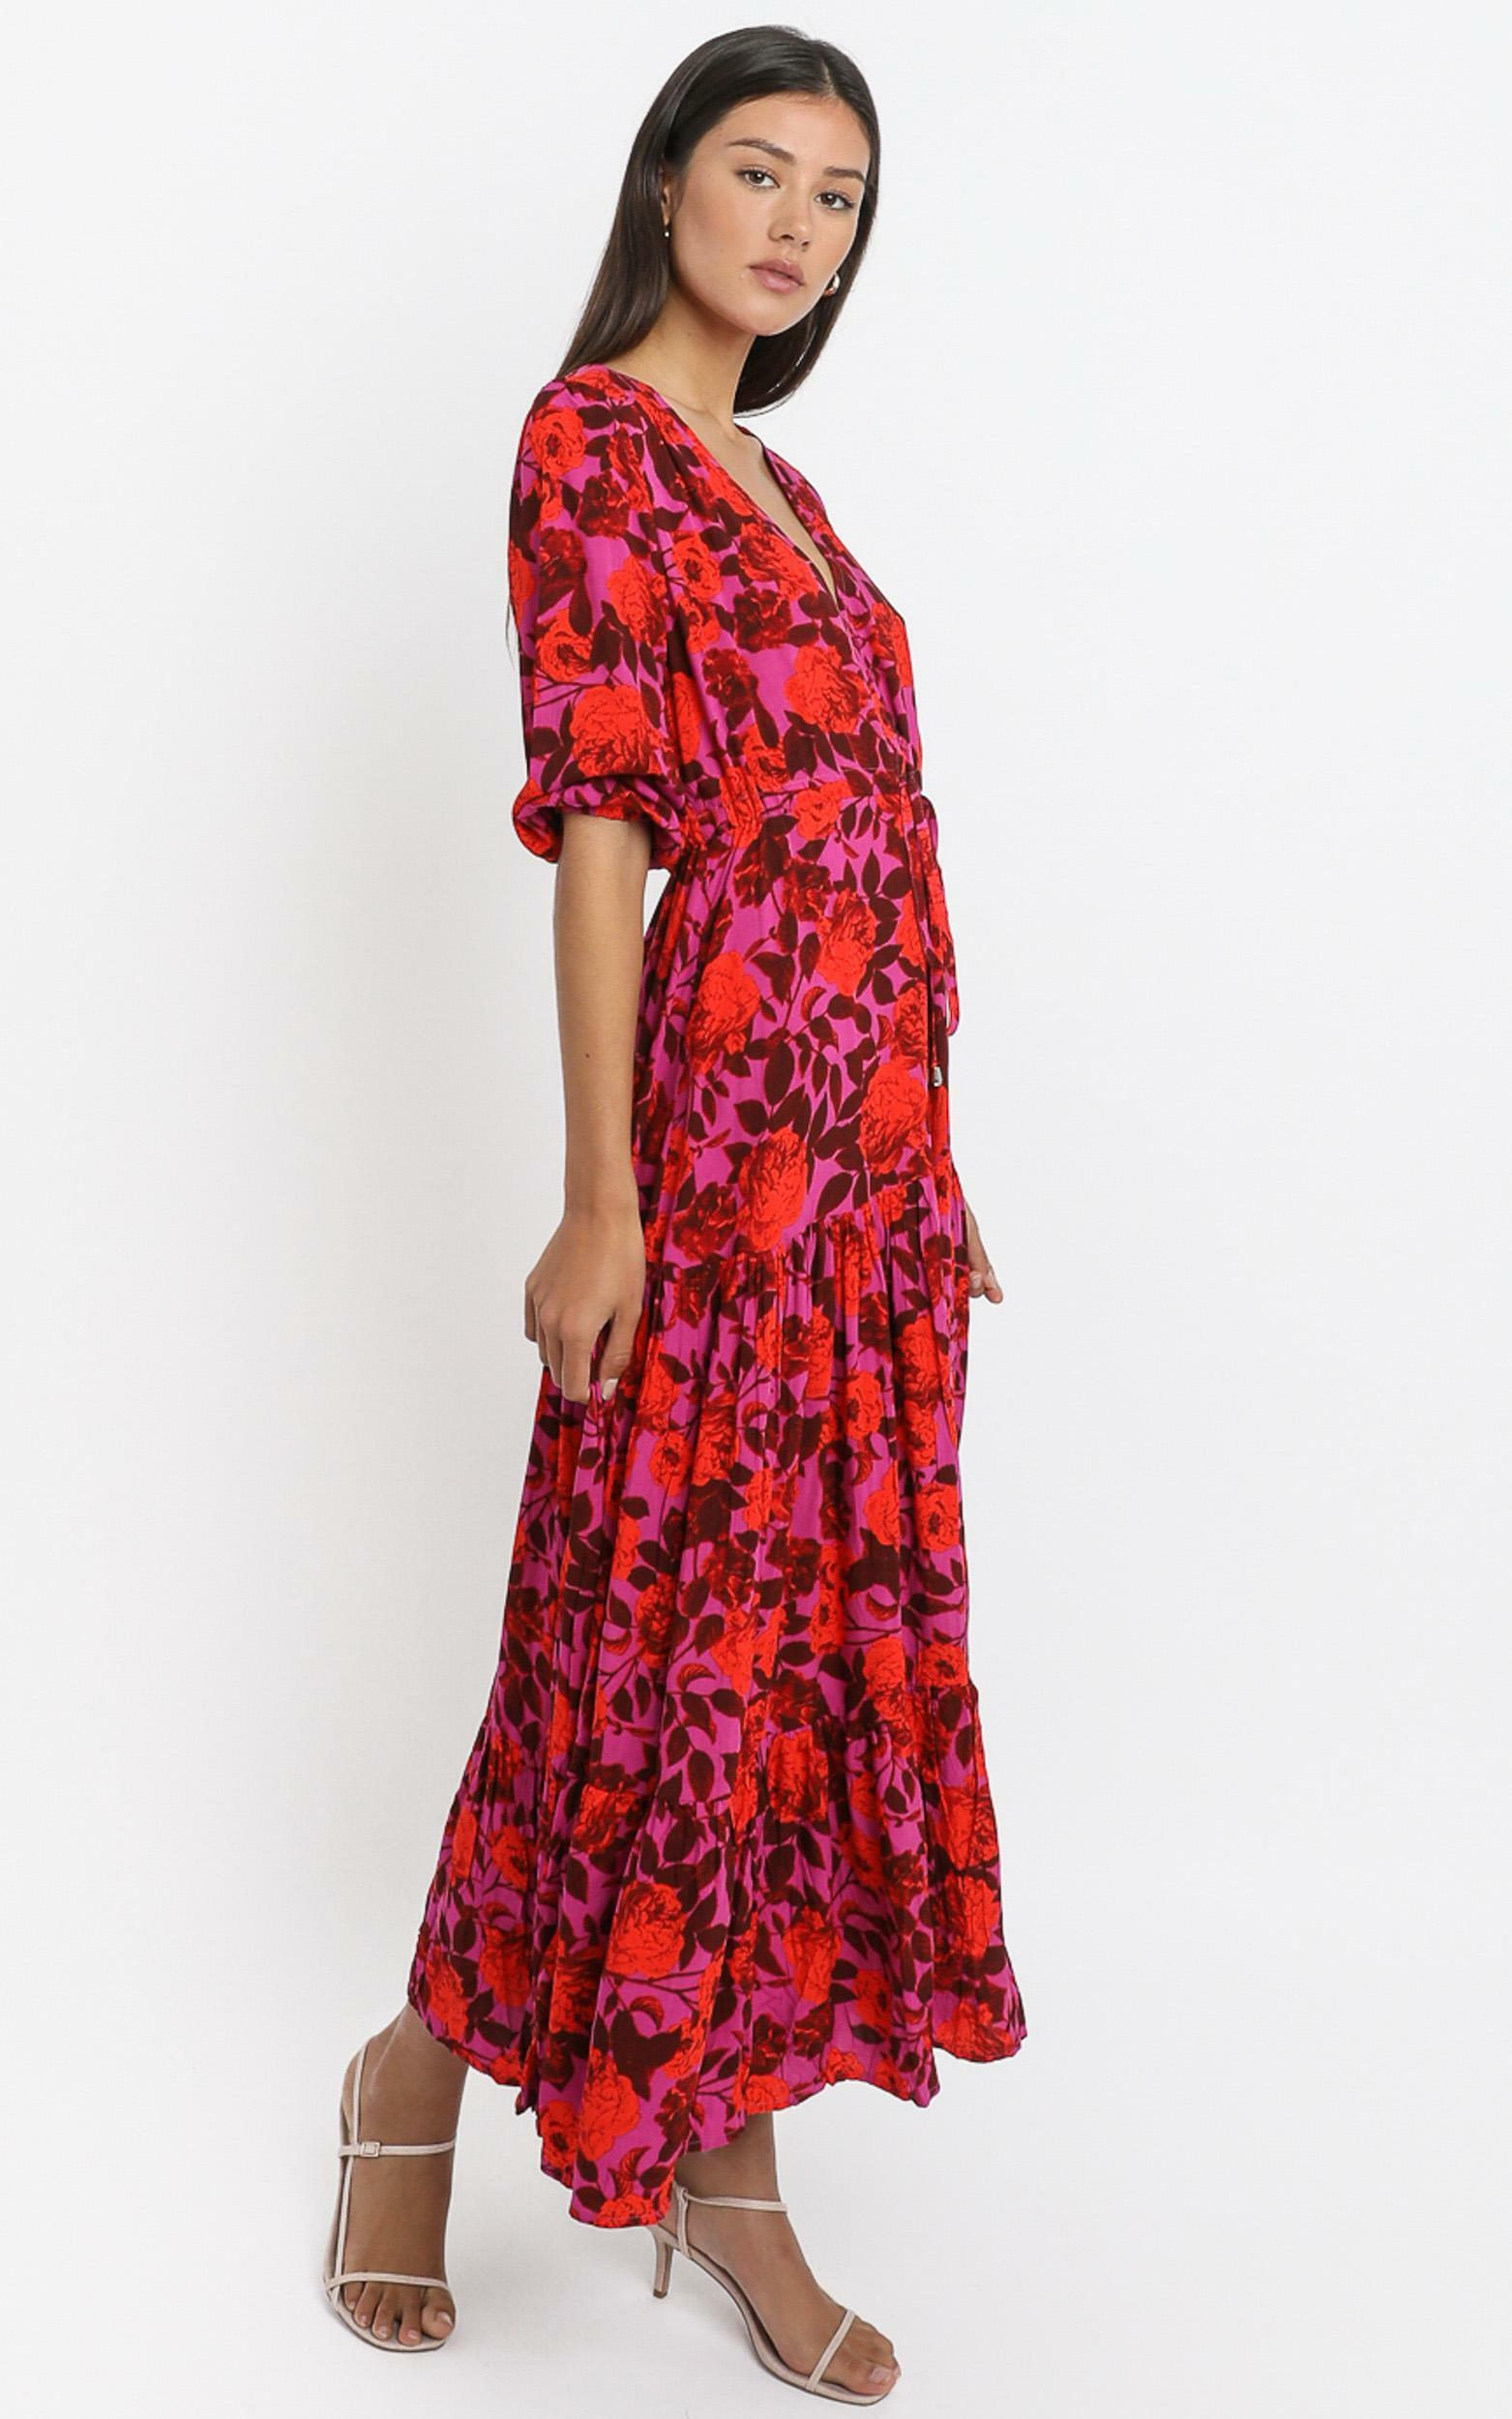 Waiting So Long Dress In Pink Floral - 20 (XXXXL), Pink, hi-res image number null